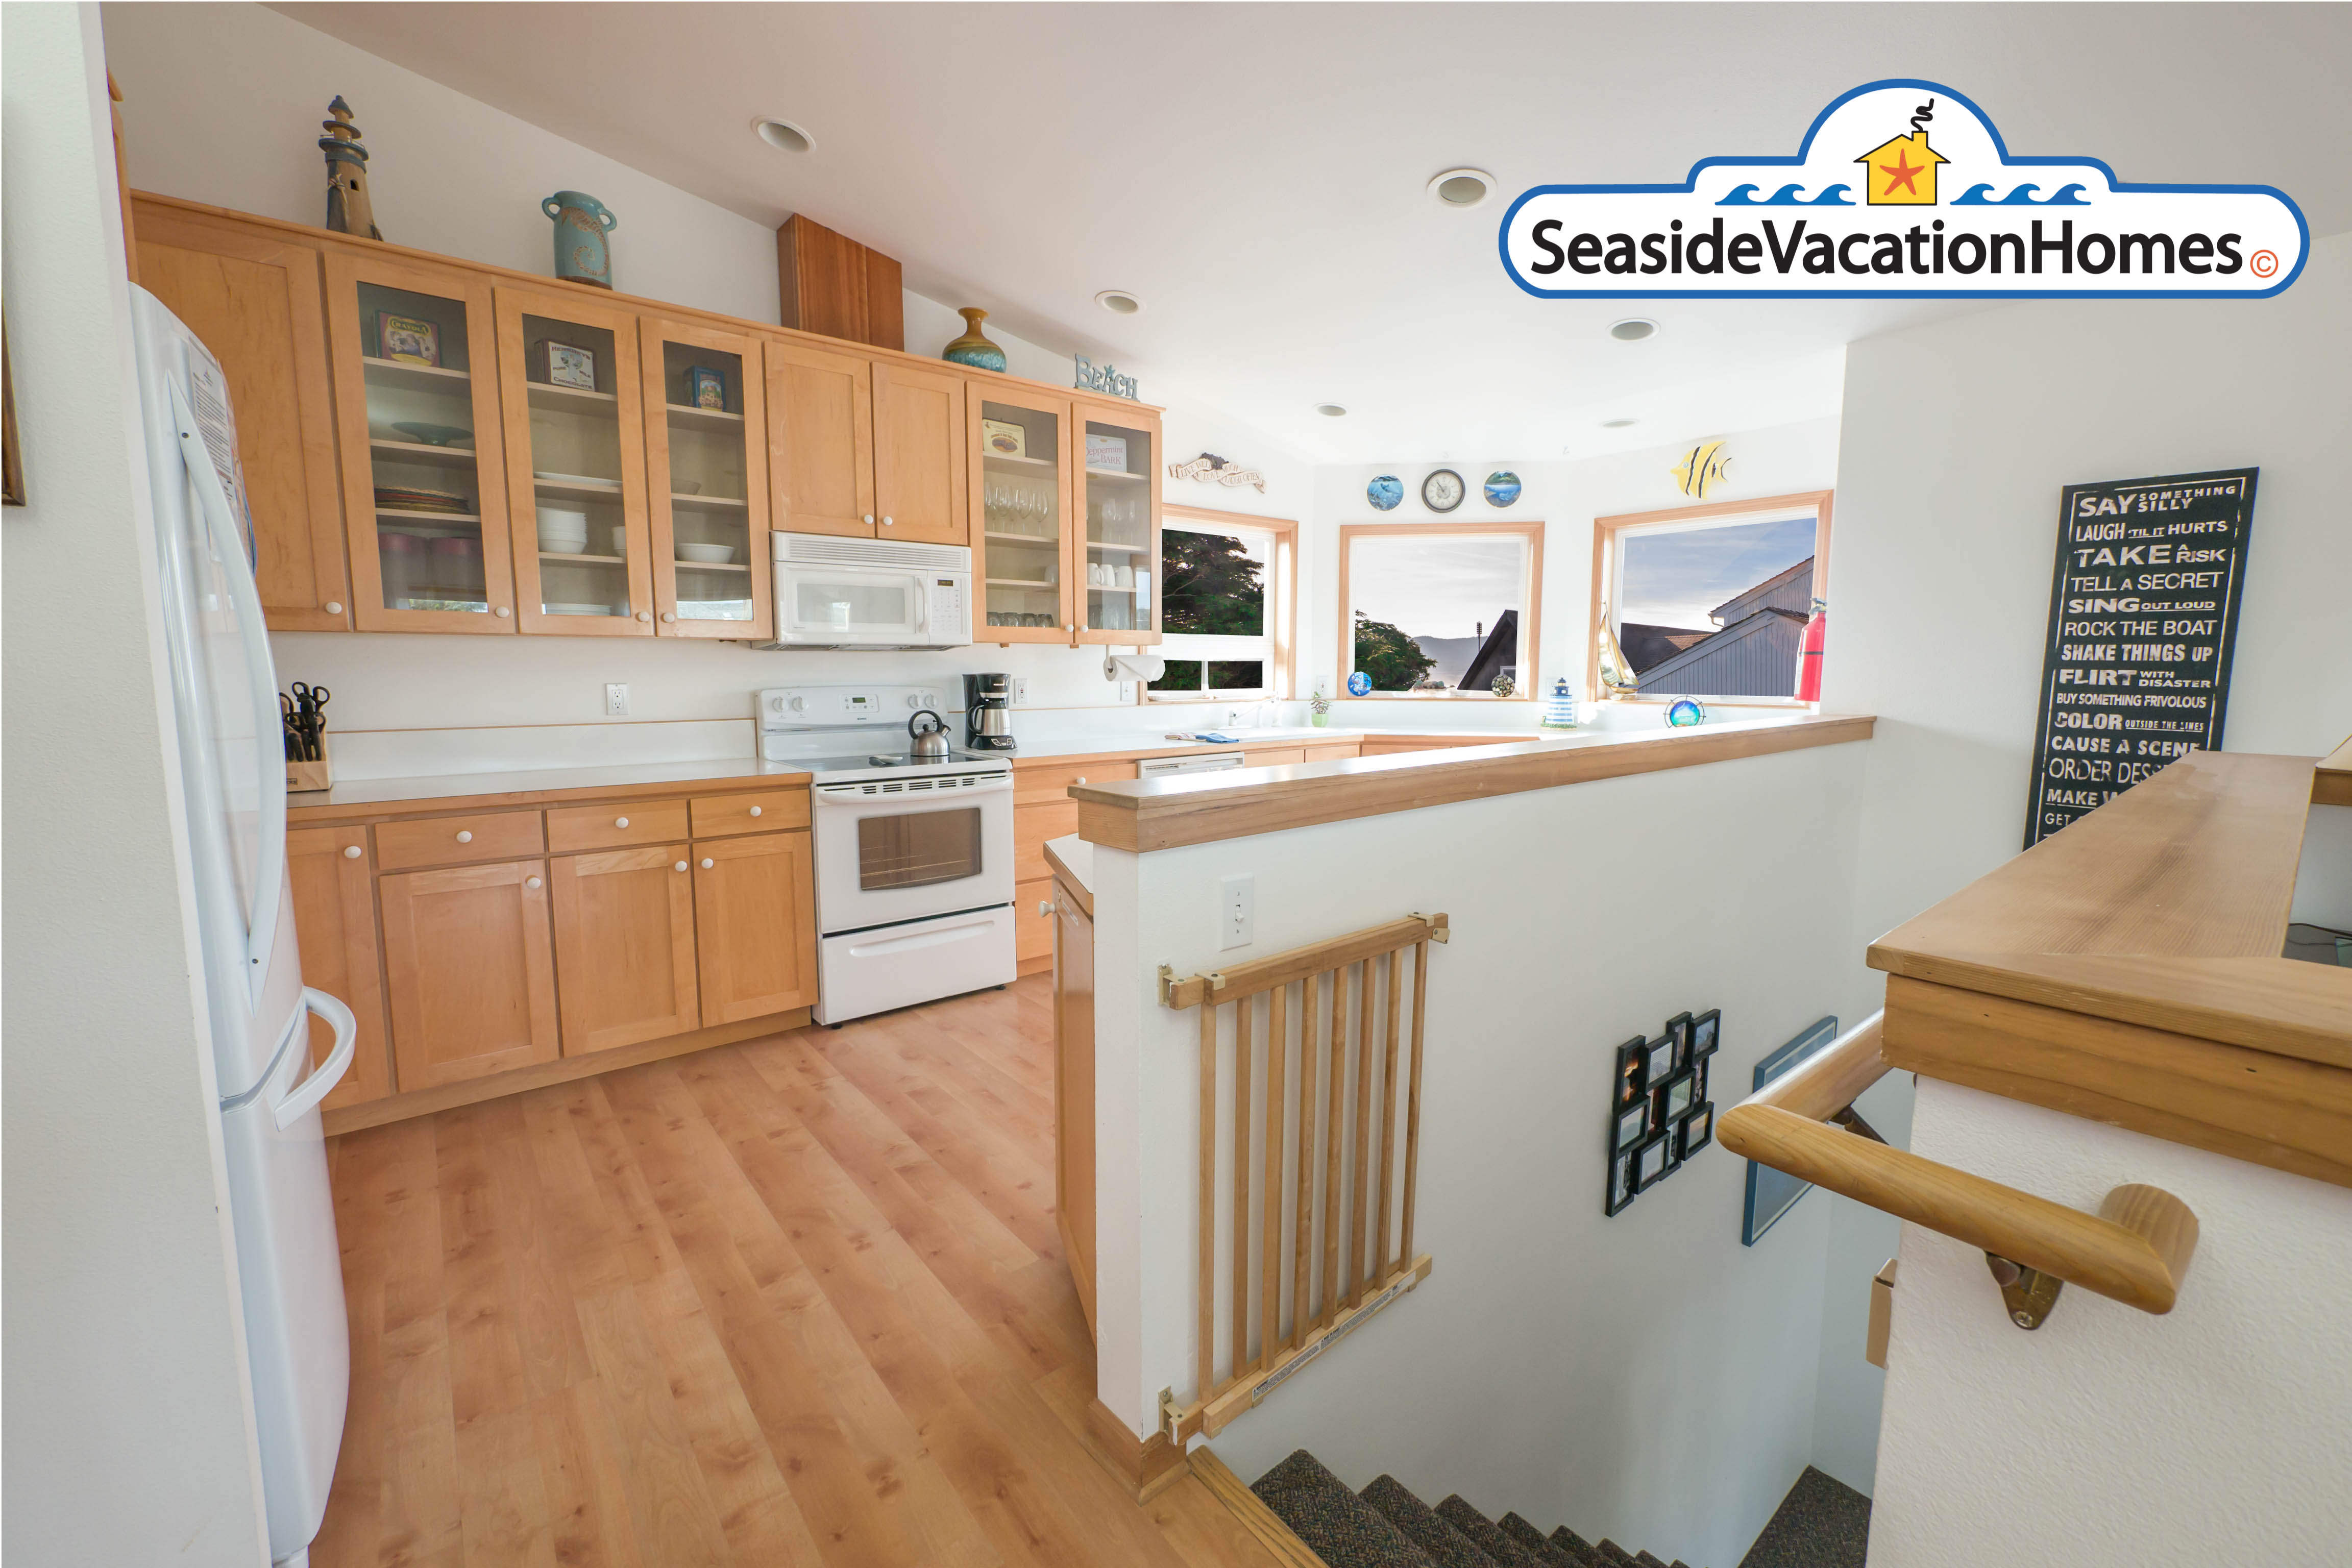 Seaside, OR 5 bedroom vacation home rentals